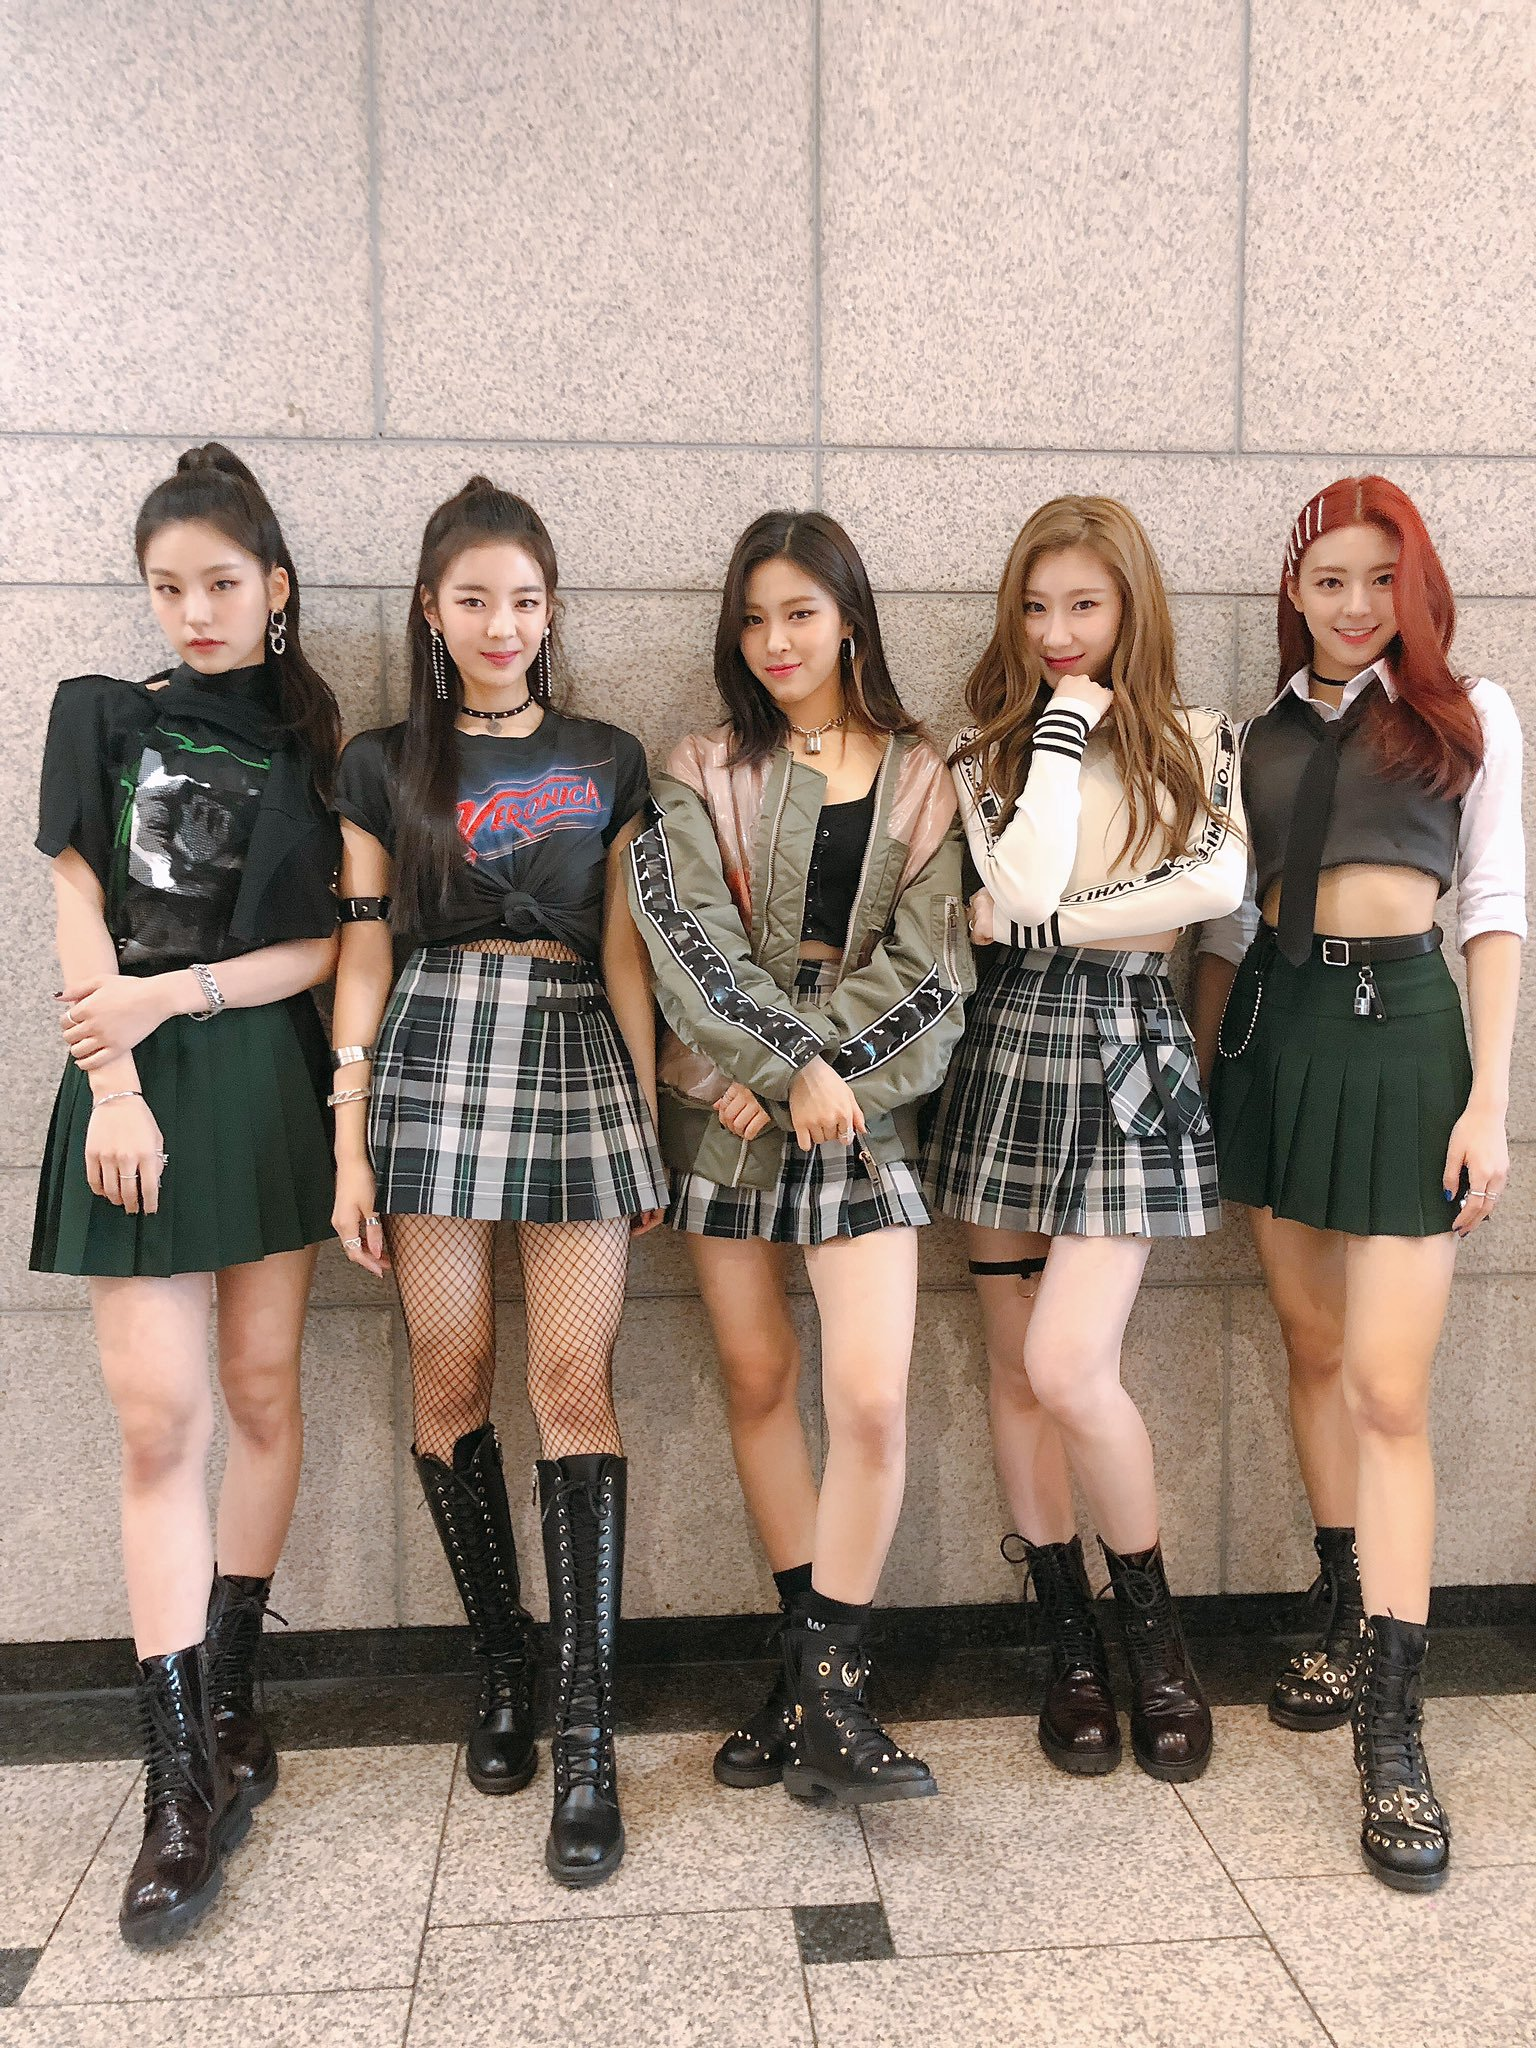 itzy, itzy profile, itzy facts, itzy members, itzy leader, itzy visual, itzy maknae, itzy age, itzy height